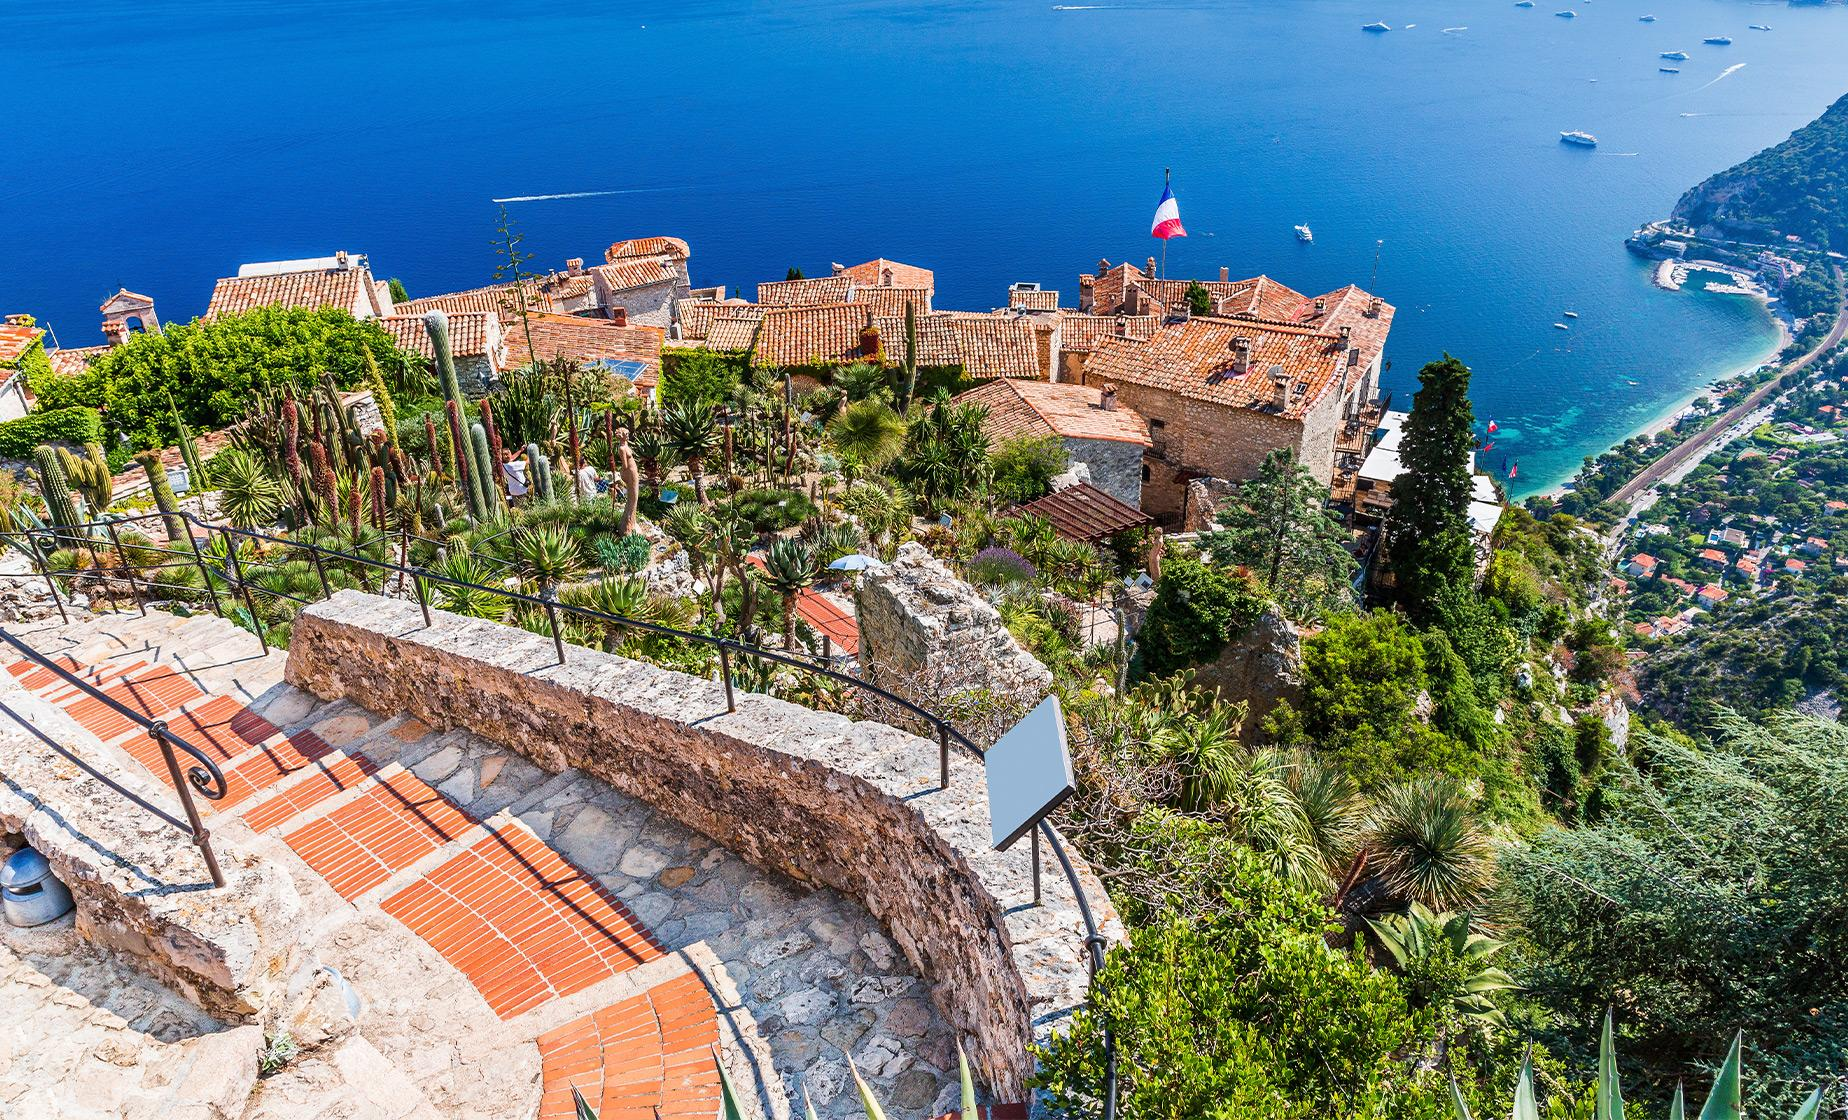 Monte Carlo, Eze and La Turbie